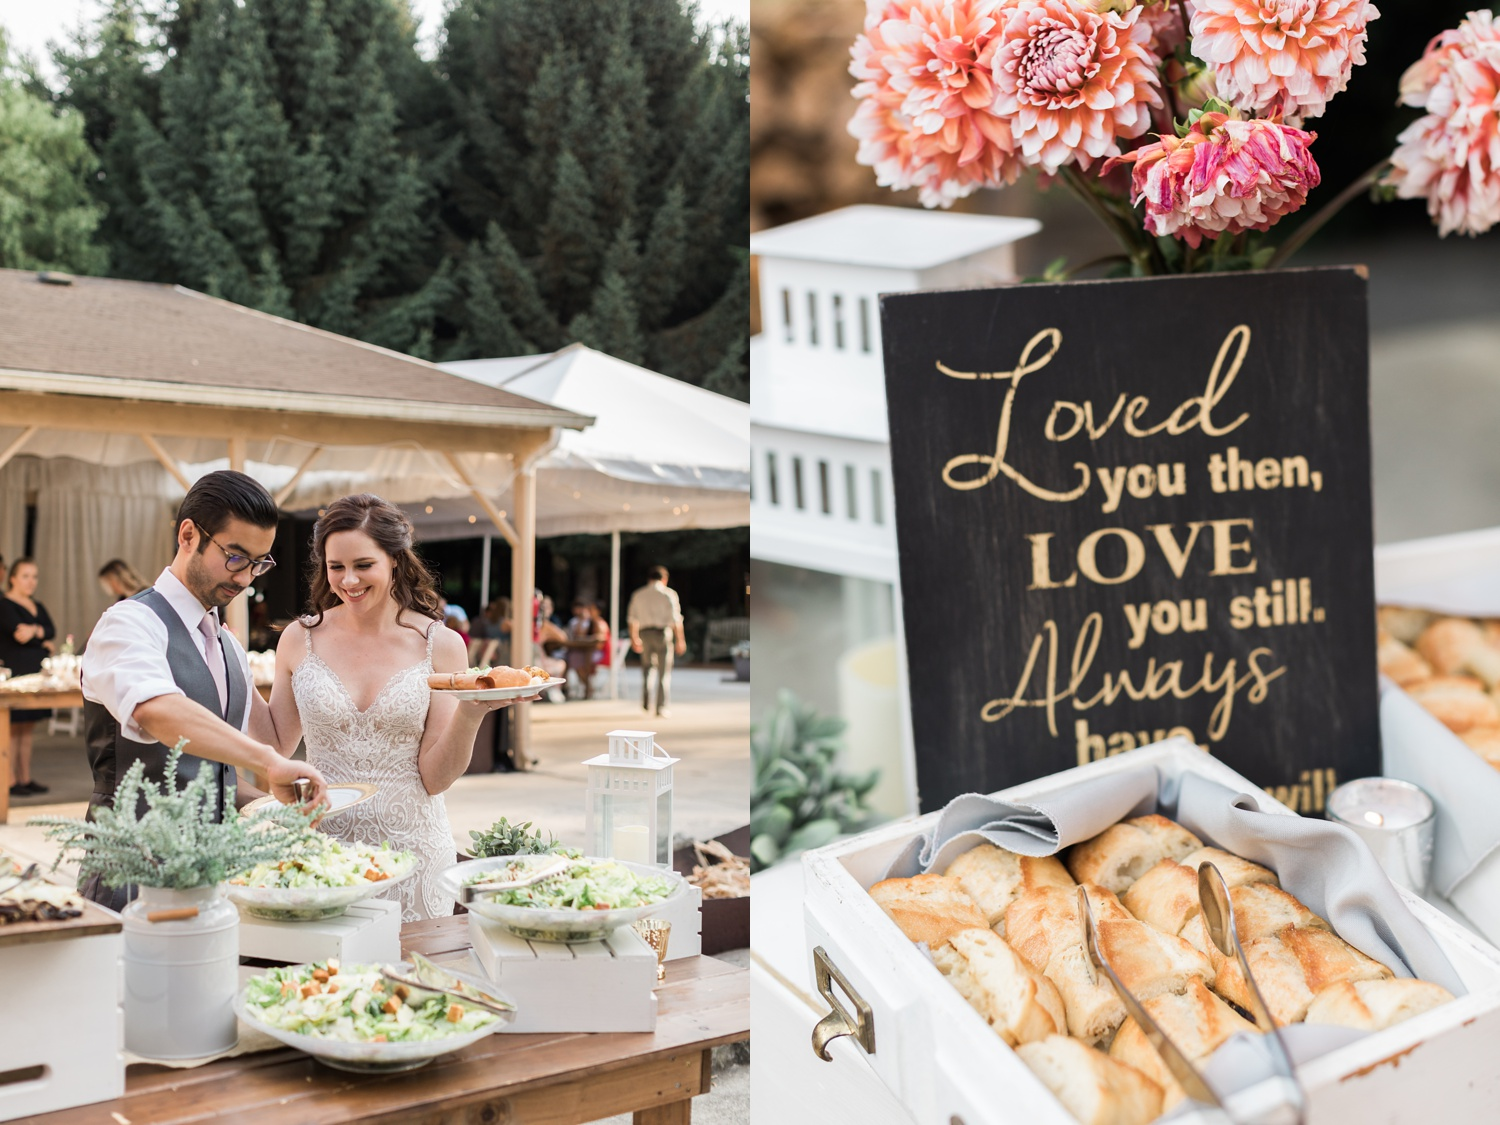 A bride and groom serve themselves dinner during their wedding reception at Woodland Meadow Farms in Snohomish, a wedding venue near Seattle, WA. | Joanna Monger Photography | Seattle & Snohomish Photographer